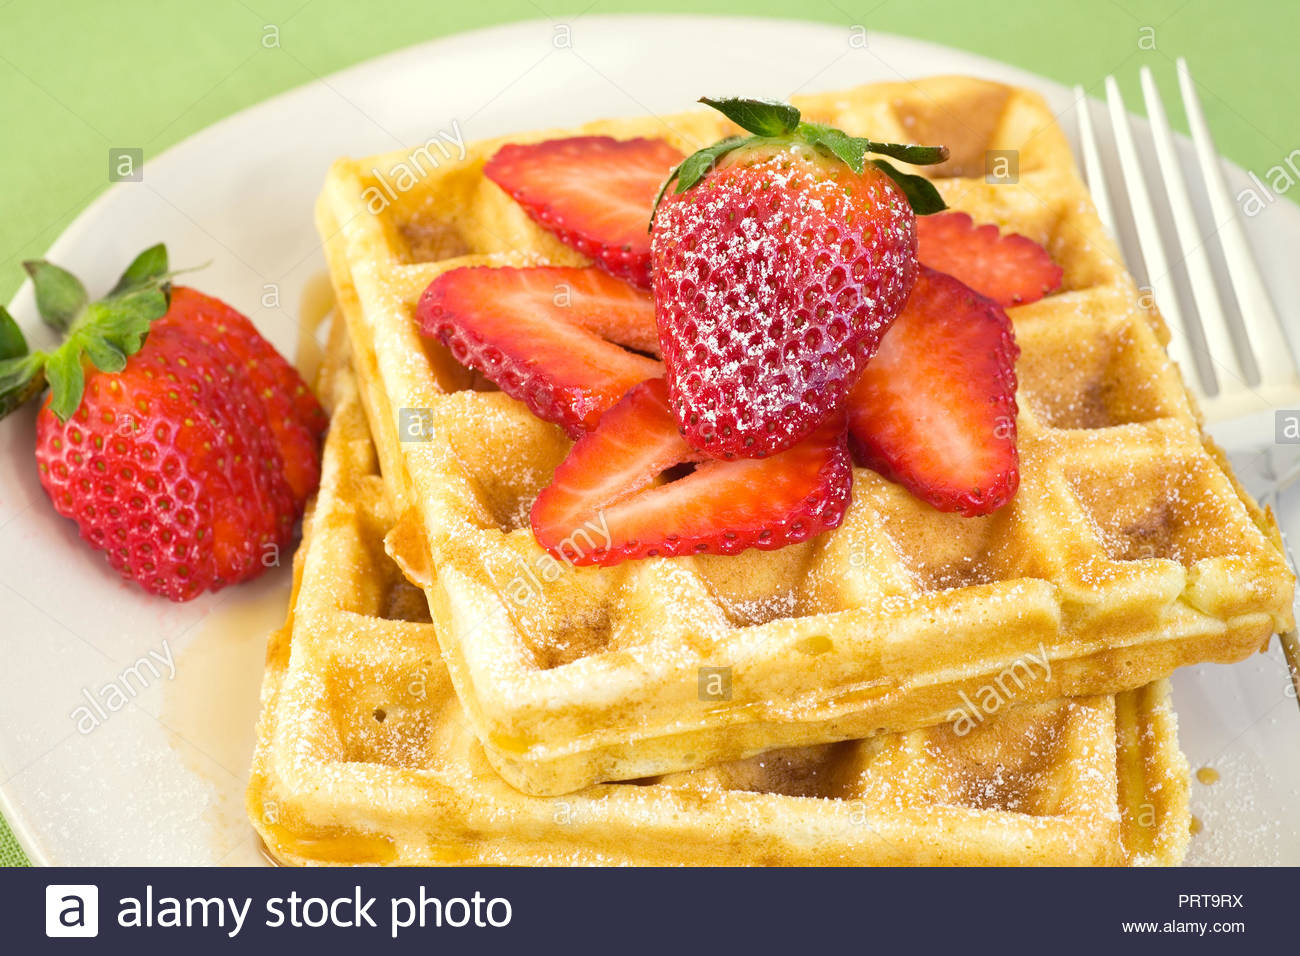 Delicious homemade waffles and fresh strawberries, Canadian Maple syrup and lightly dusted with confectioner's sugar. - Stock Image